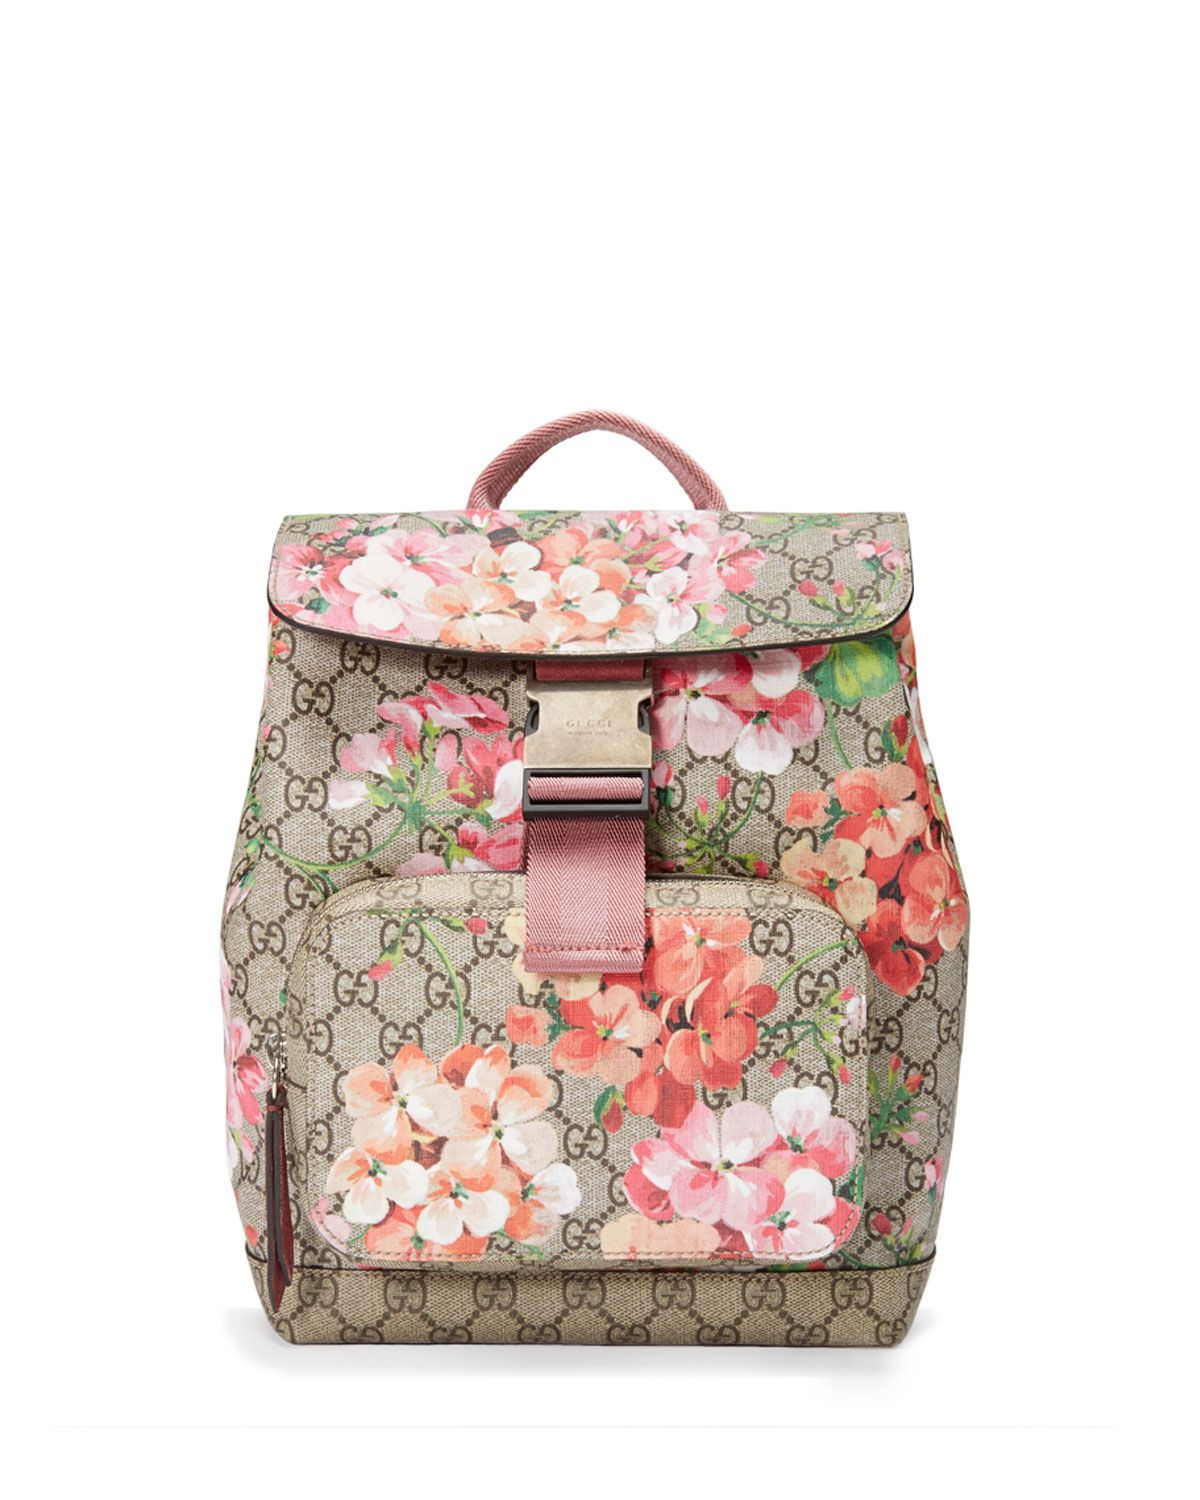 15d832b8d0f Gucci GG Blooms Small Backpack